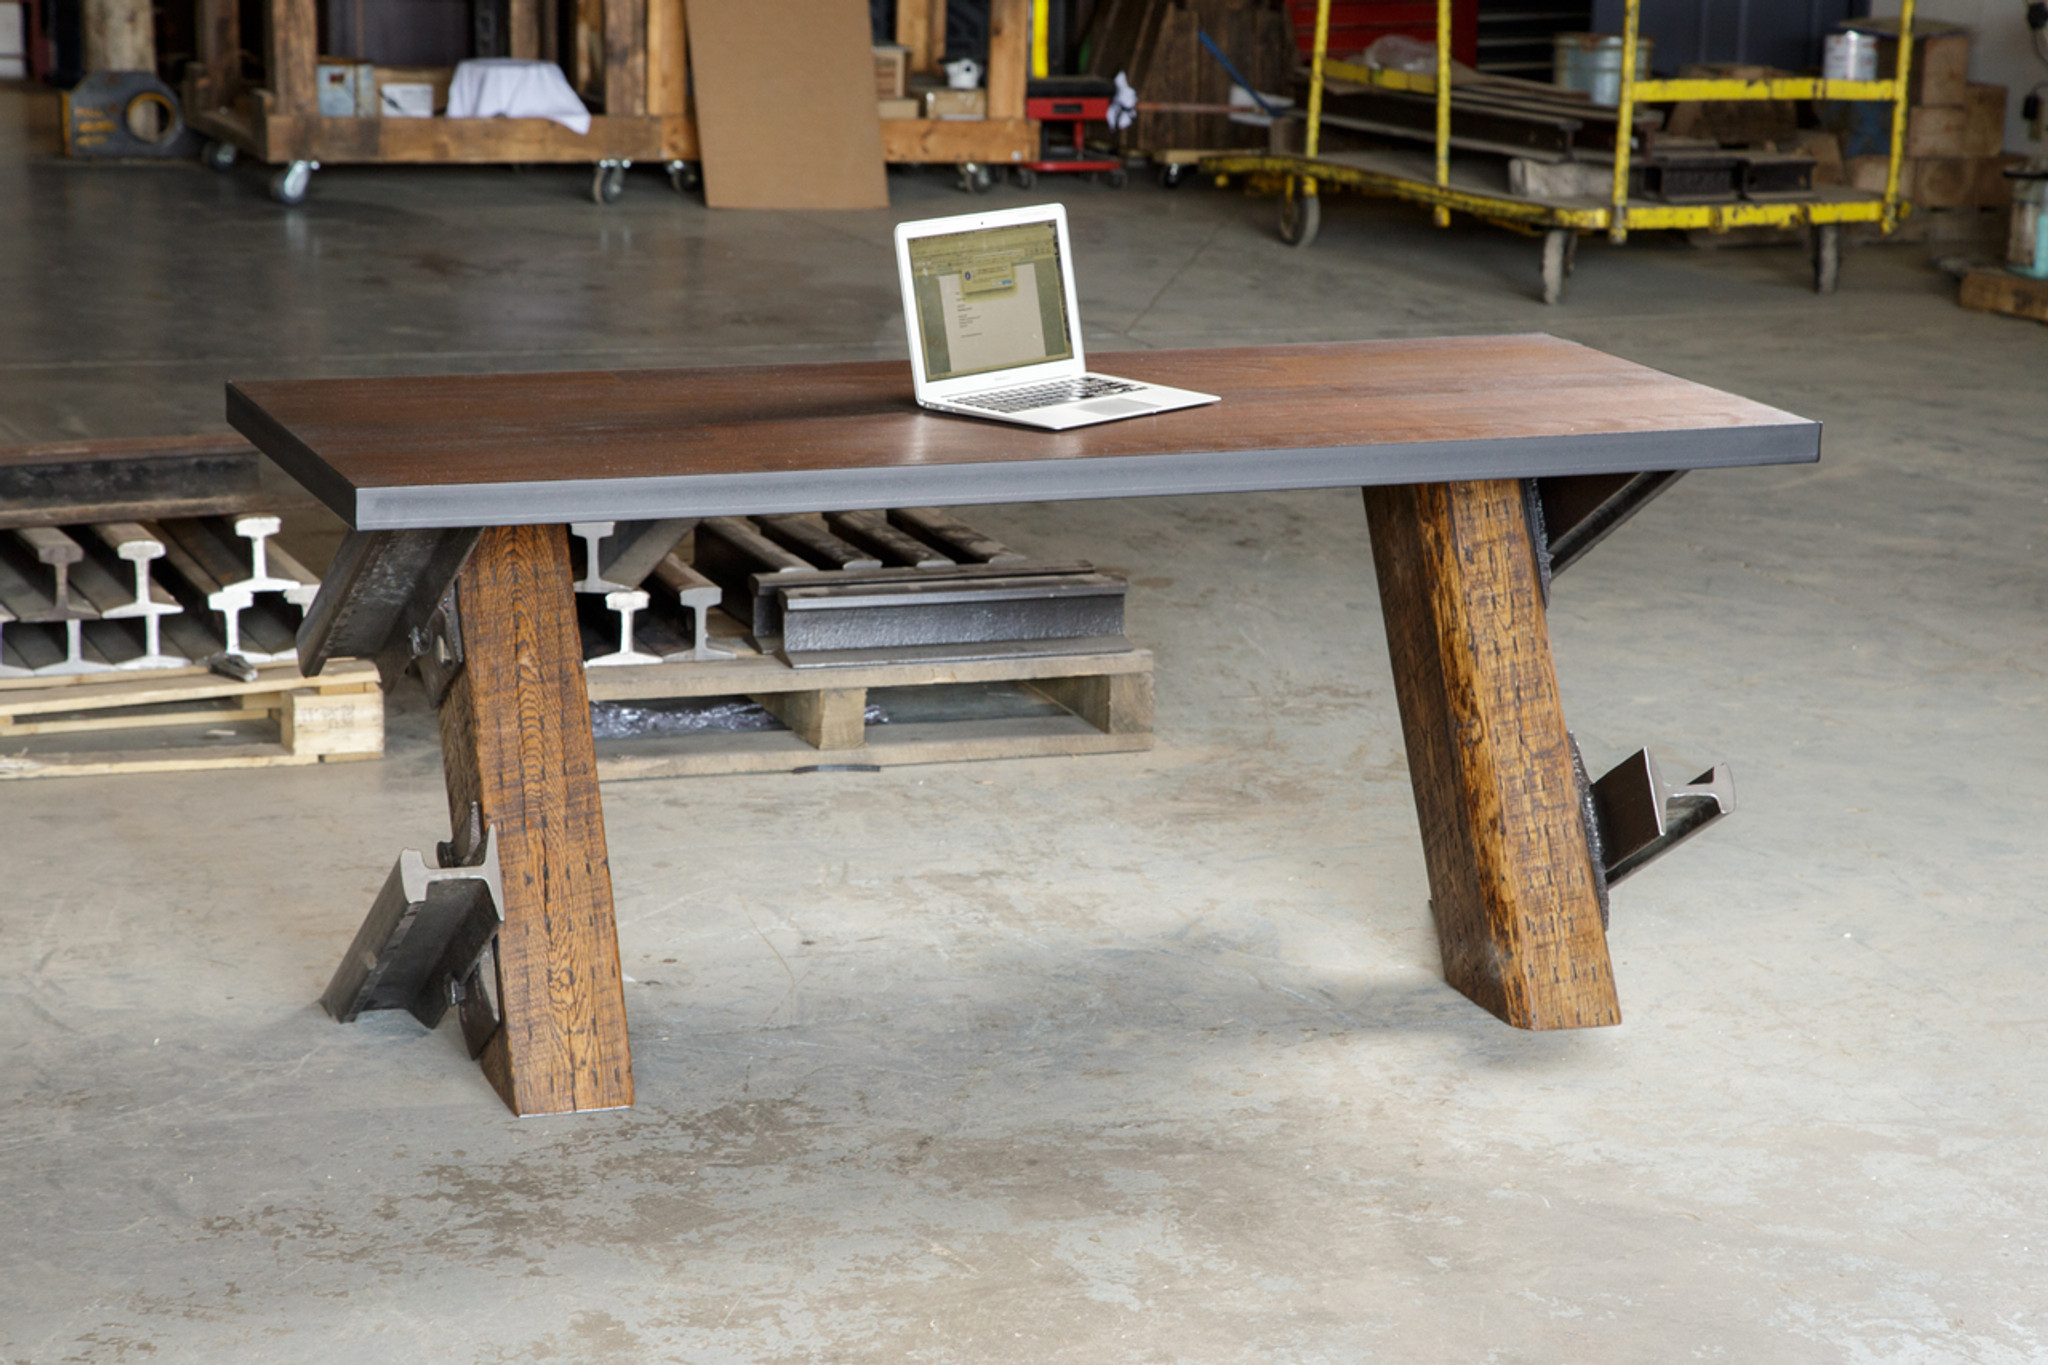 industrial interior desk with apple laptop on desktop